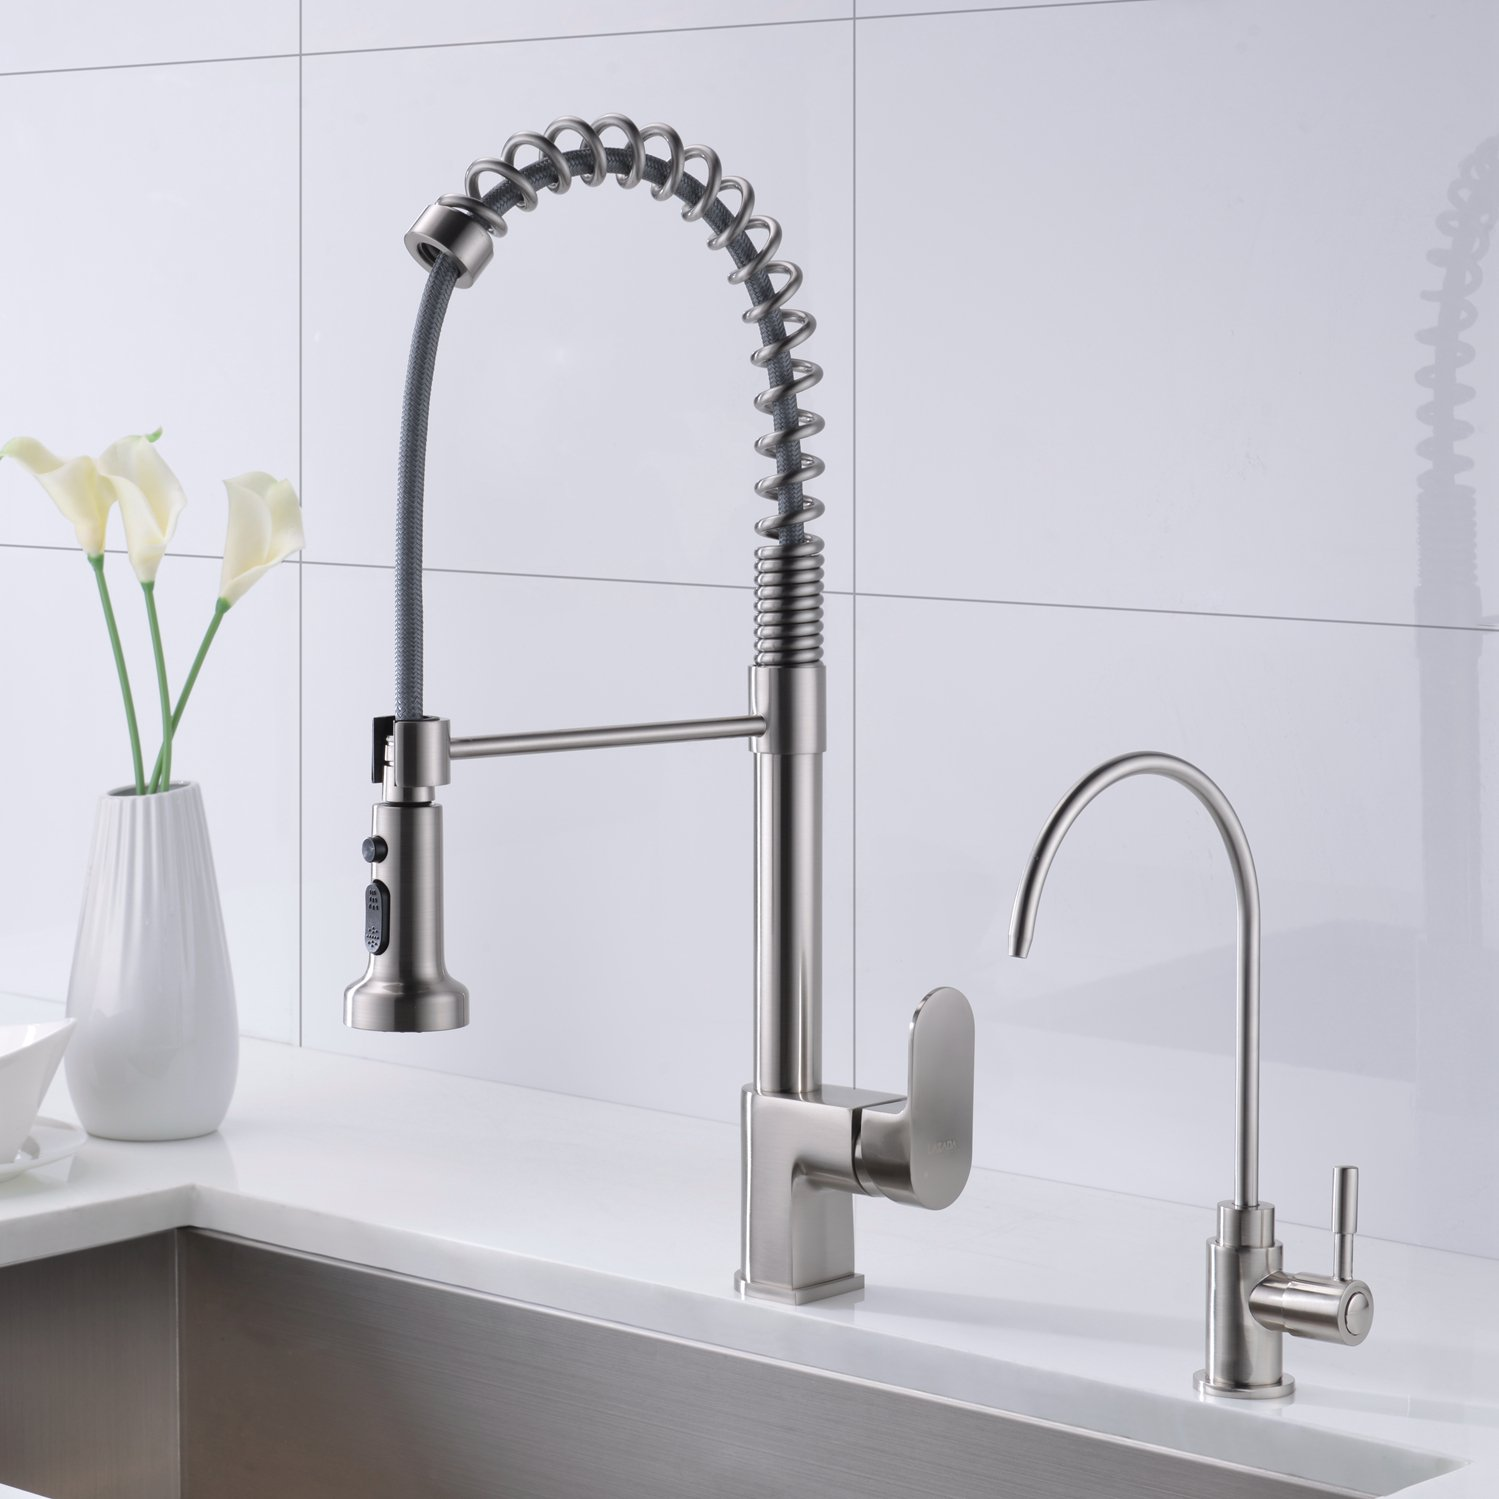 Drinking Water Faucet,LAZADA Upgrade Solid Brass Single Handle Brushed Nickel Water Filtration Faucet